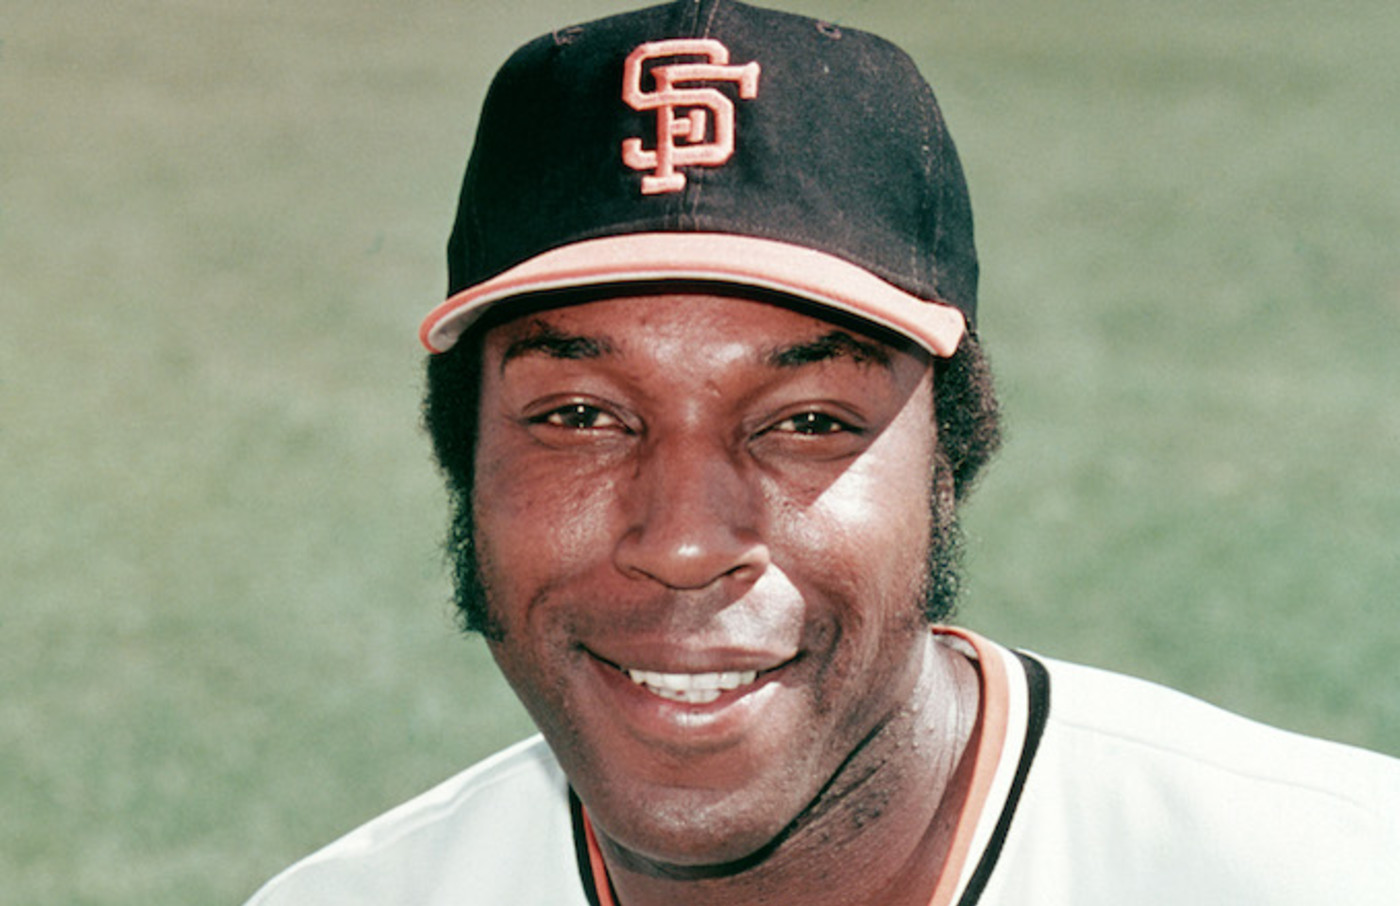 Willie McCovey #44 of the San Francisco Giants.